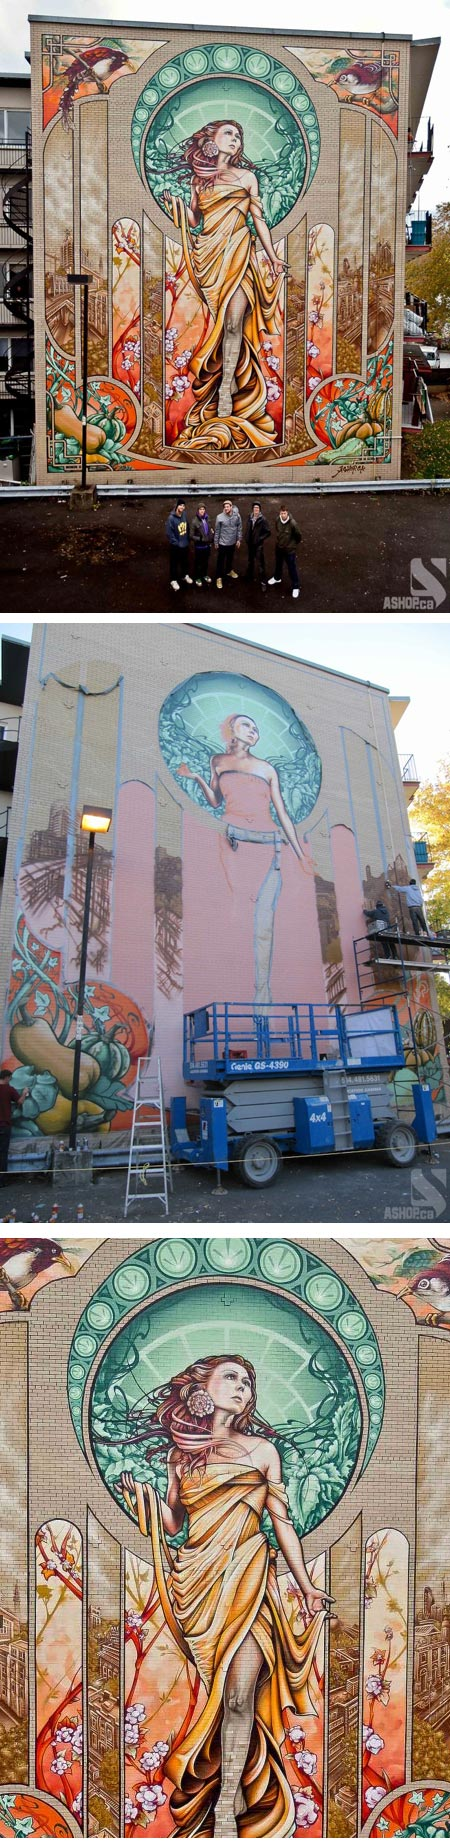 Art Nouveau style mural in Montreal by A'Shop